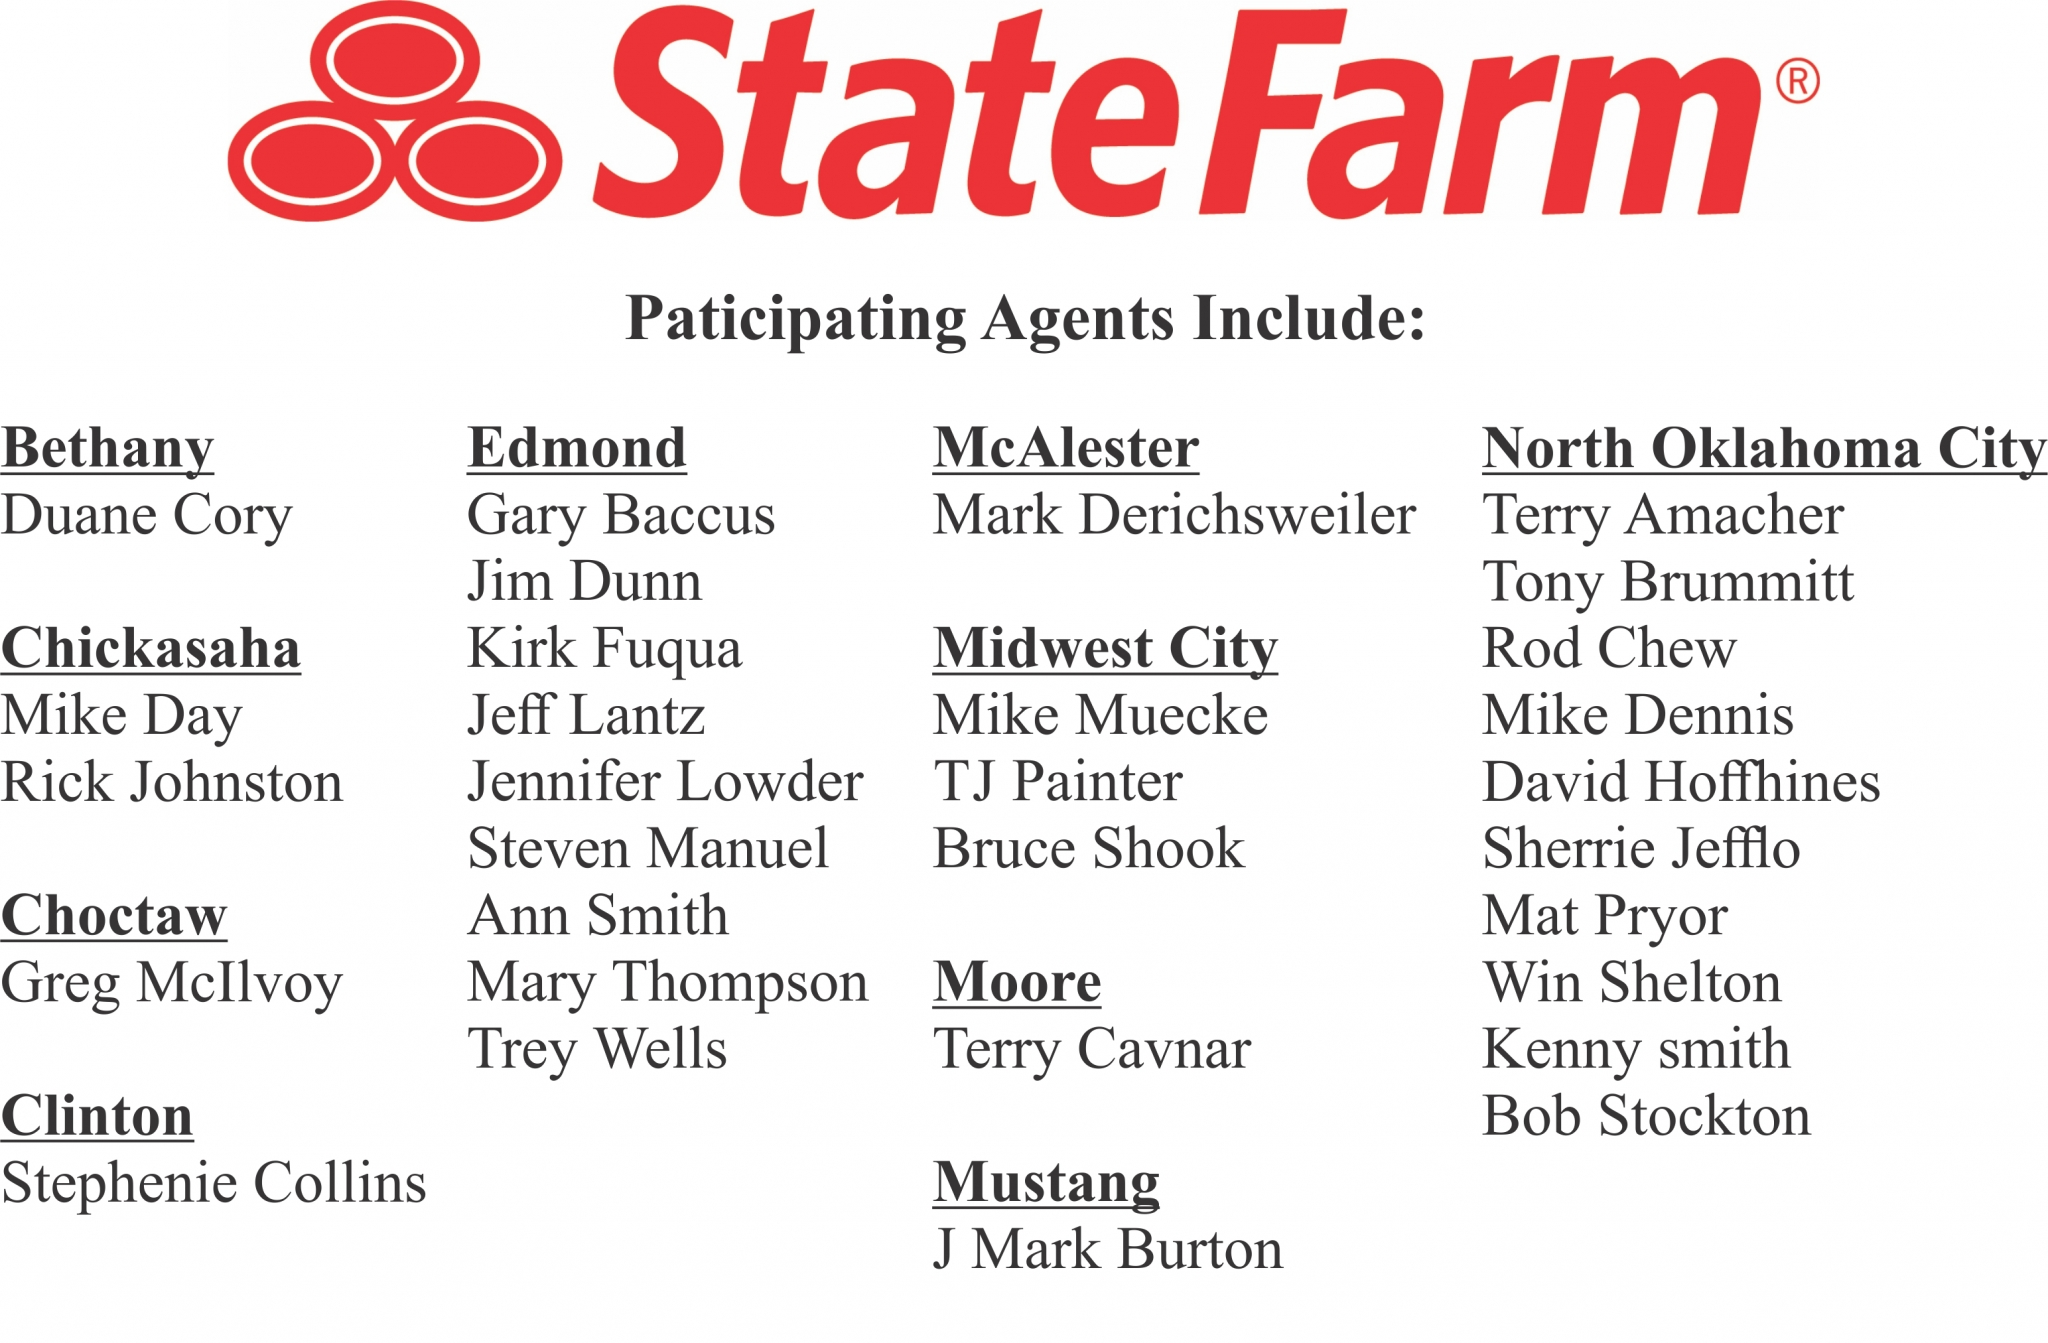 state-farm-agent-horizontal-page-1